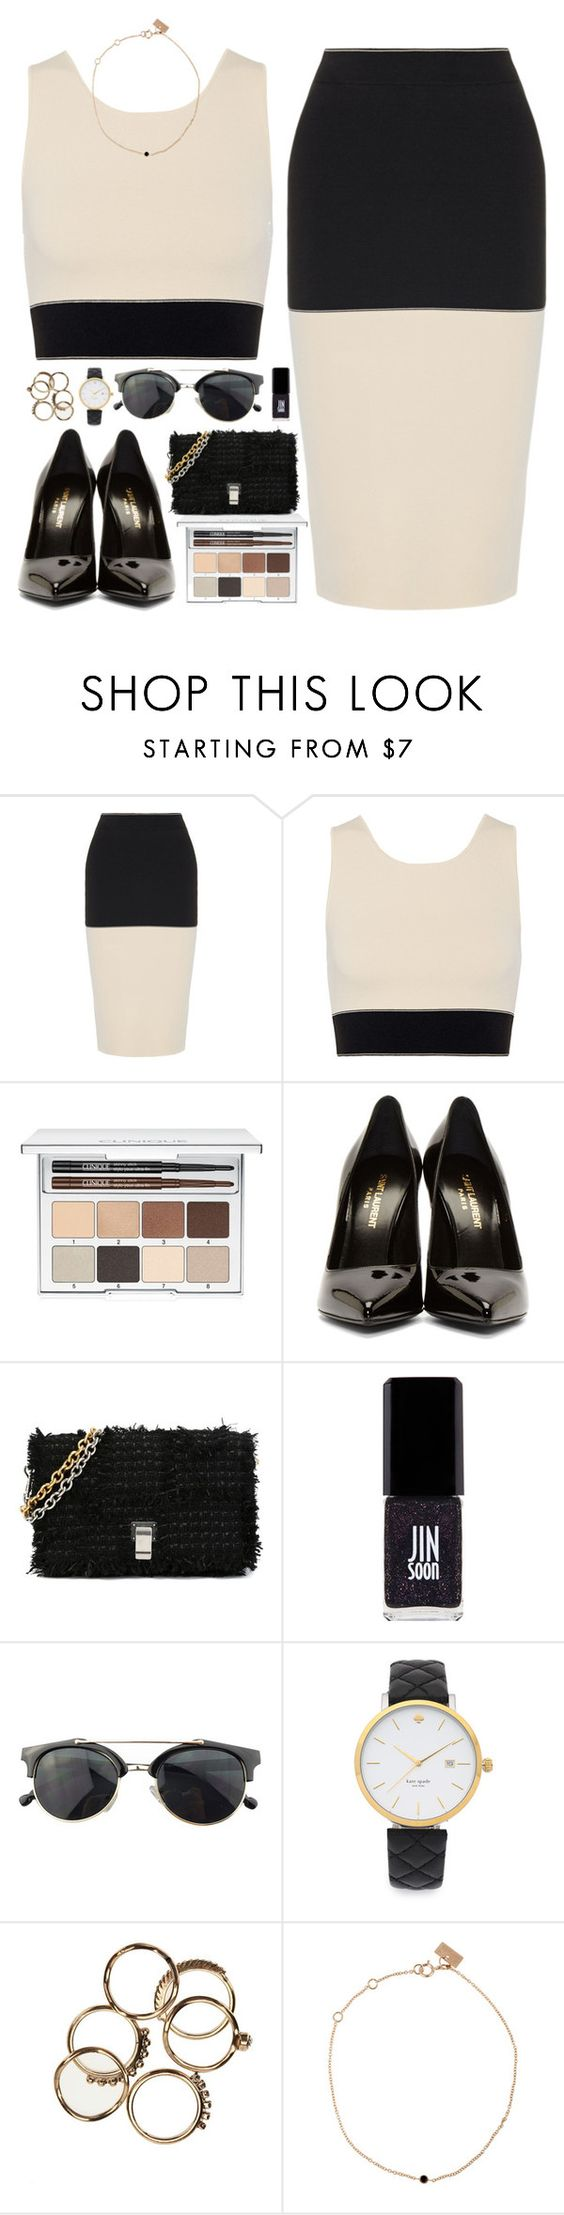 """""""Meet me on the Equinox"""" by sharinganjea ❤ liked on Polyvore featuring rag & bone, Clinique, Yves Saint Laurent, Proenza Schouler, Jin Soon, Chicnova Fashion, Kate Spade and VANRYCKE"""